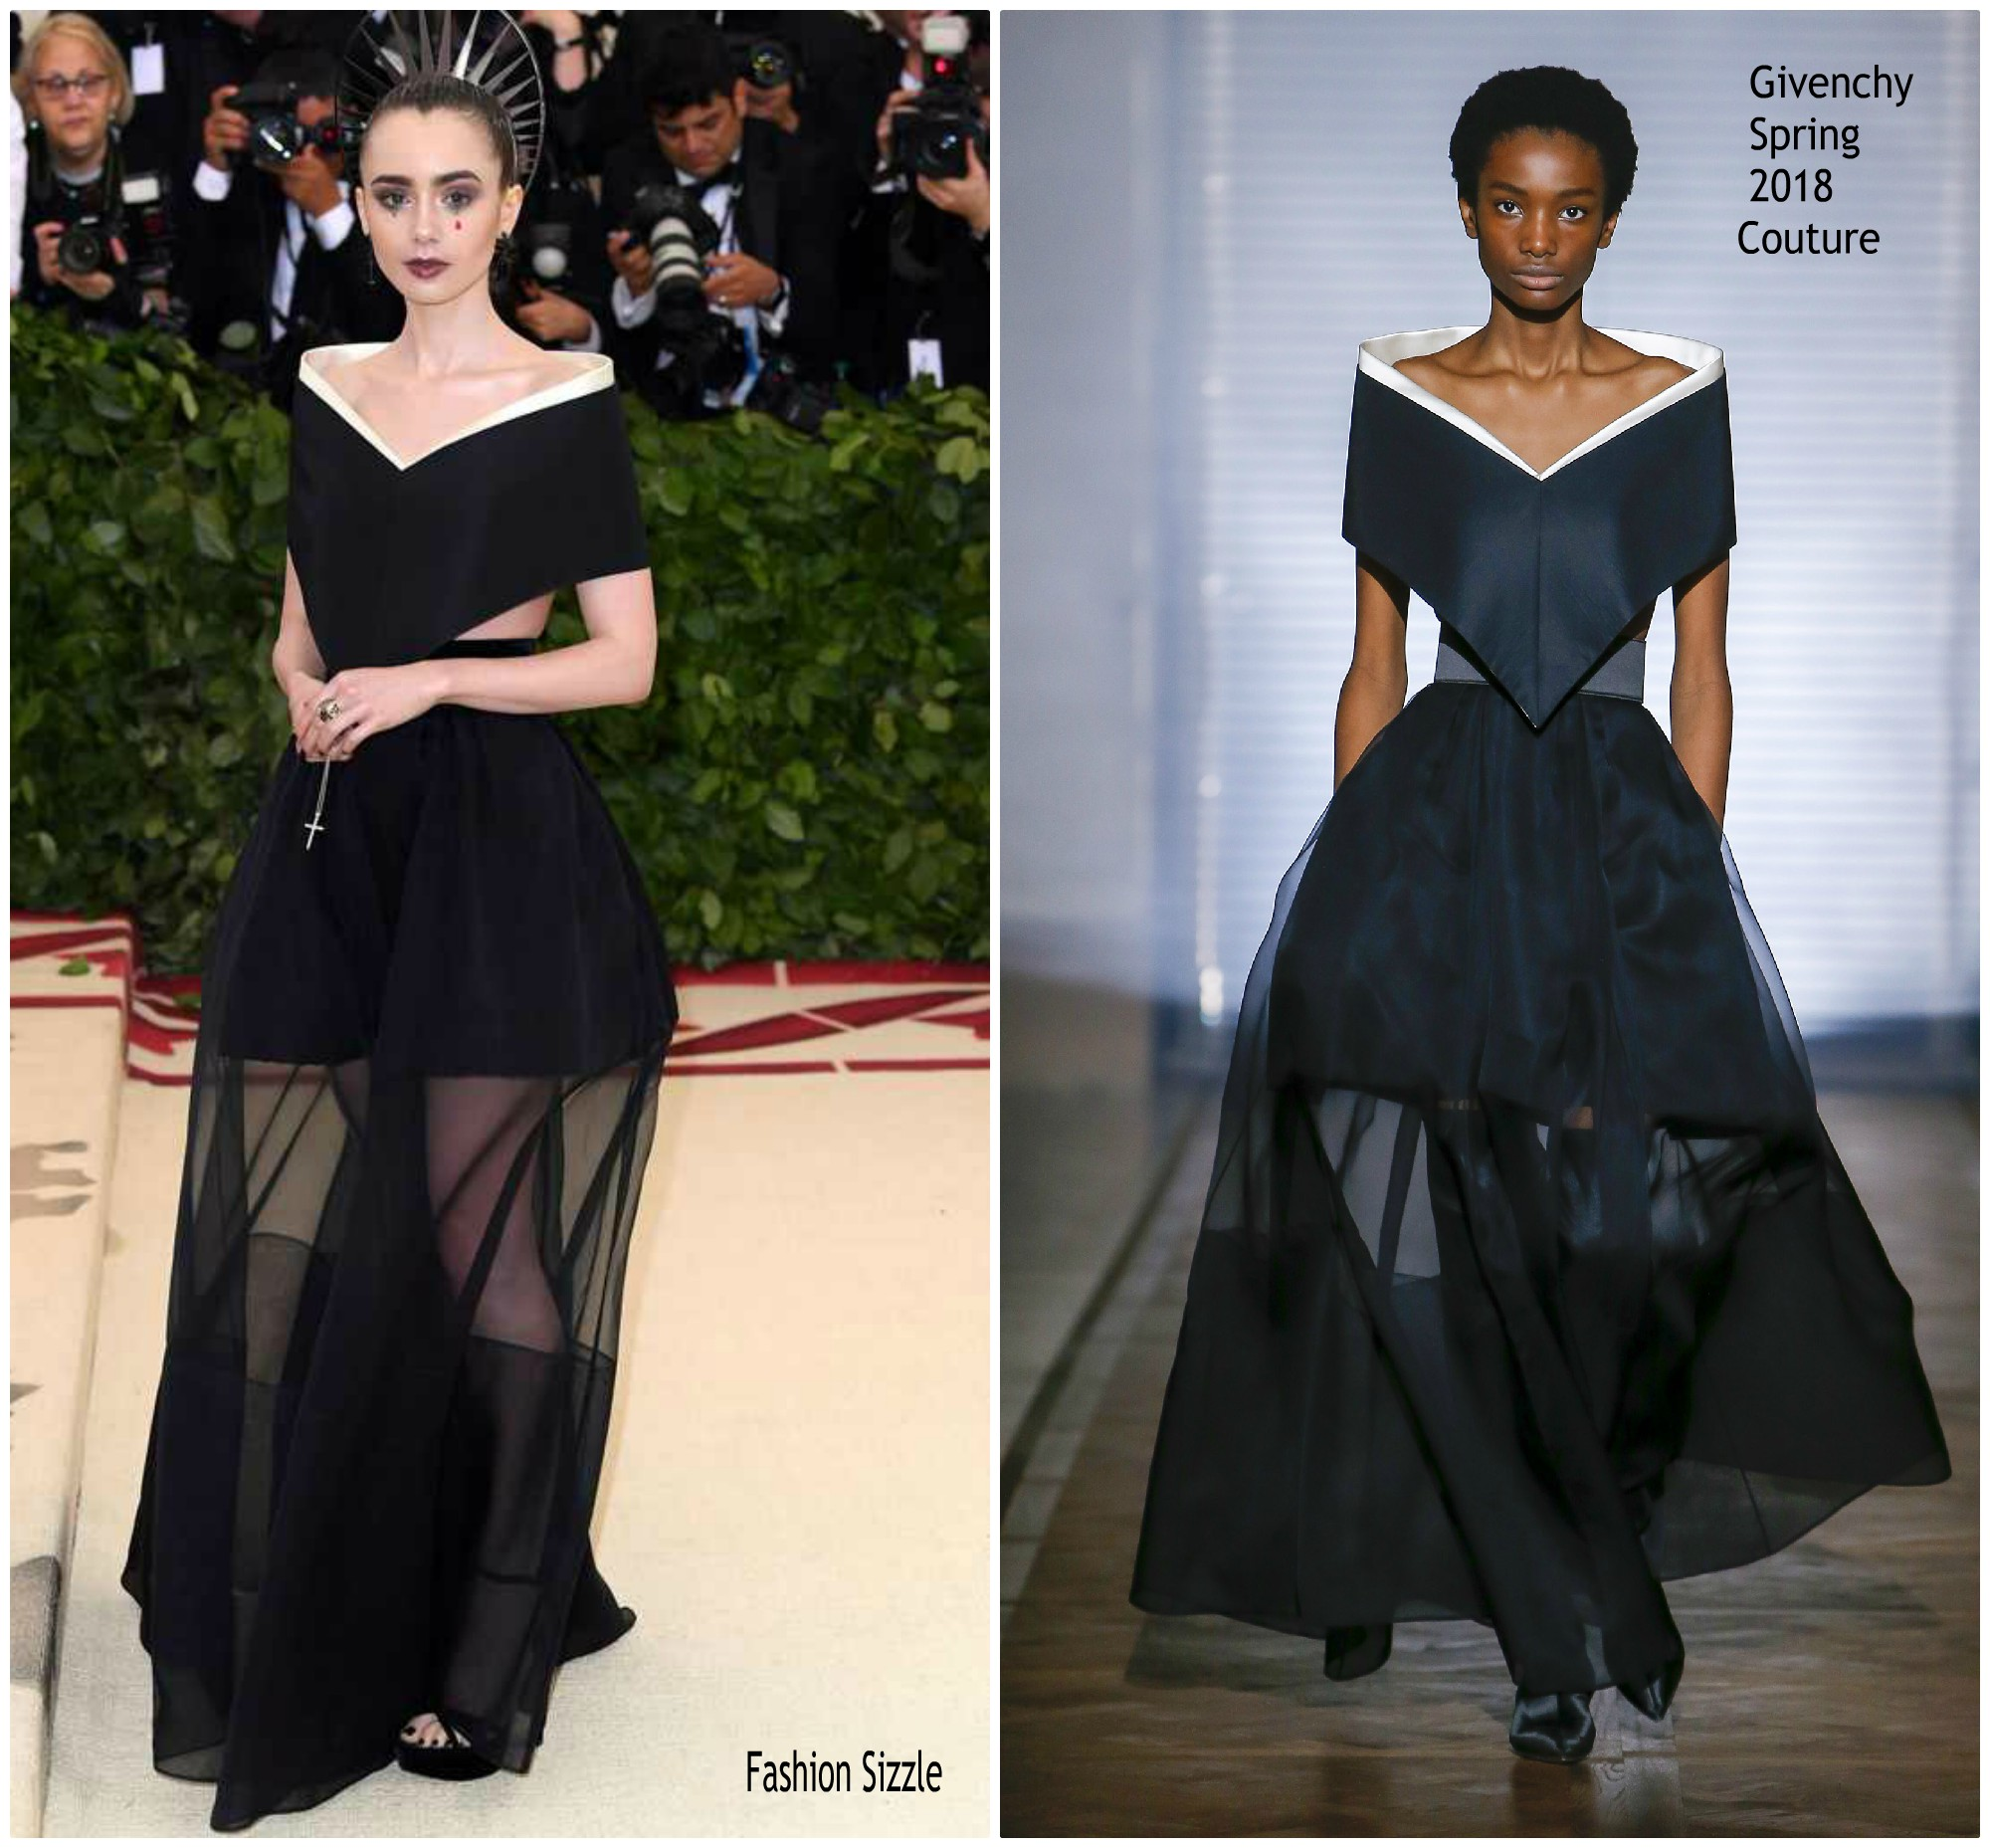 lily-collins-in-givenchy-couture-2018-met-gala